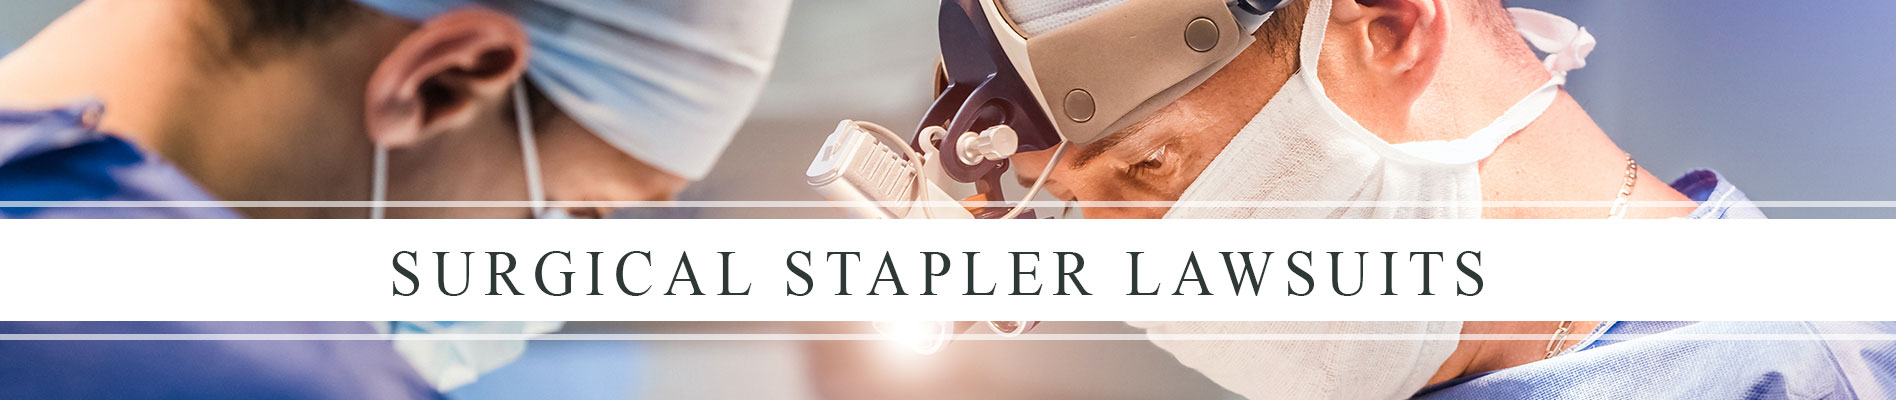 Surgical Stapler Lawsuit | Surgical Stapler Attorneys